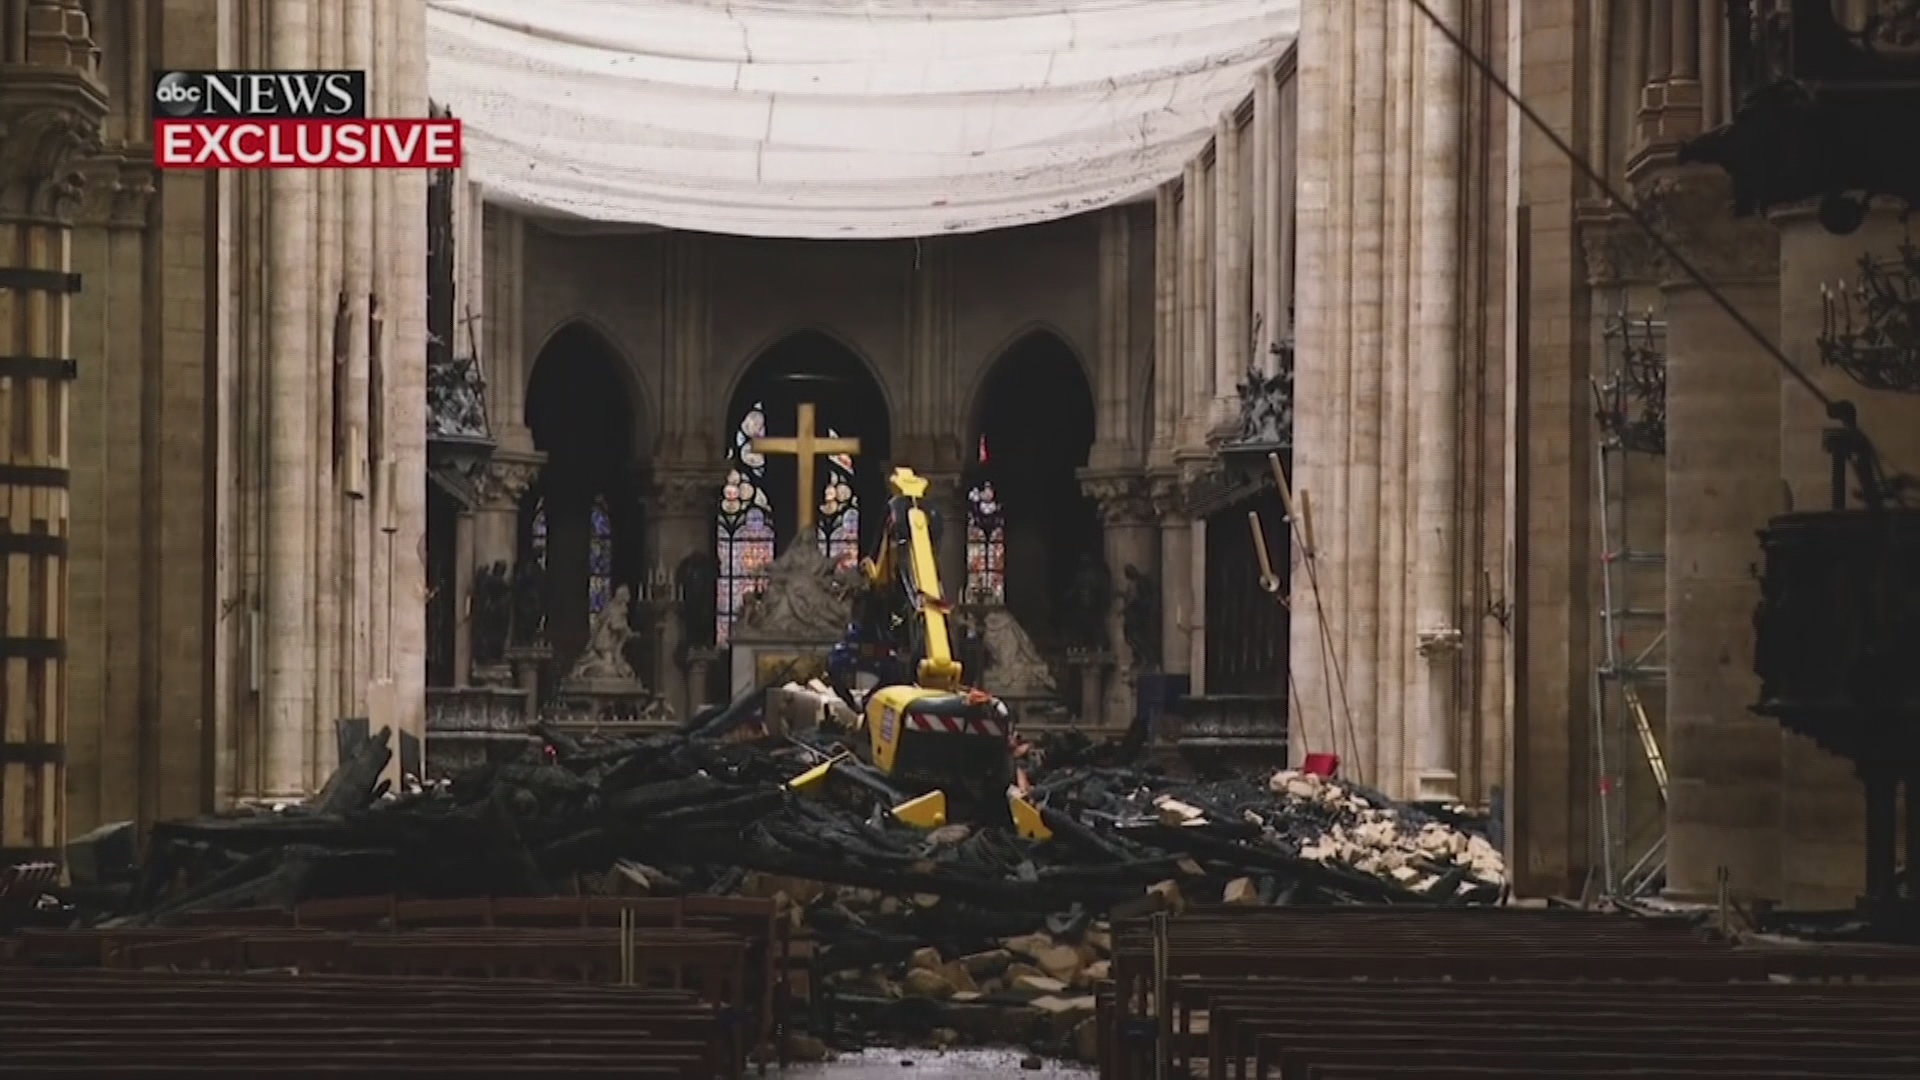 Worshippers To Wear Hard Hats At Notre Dame's First Mass Since Blaze